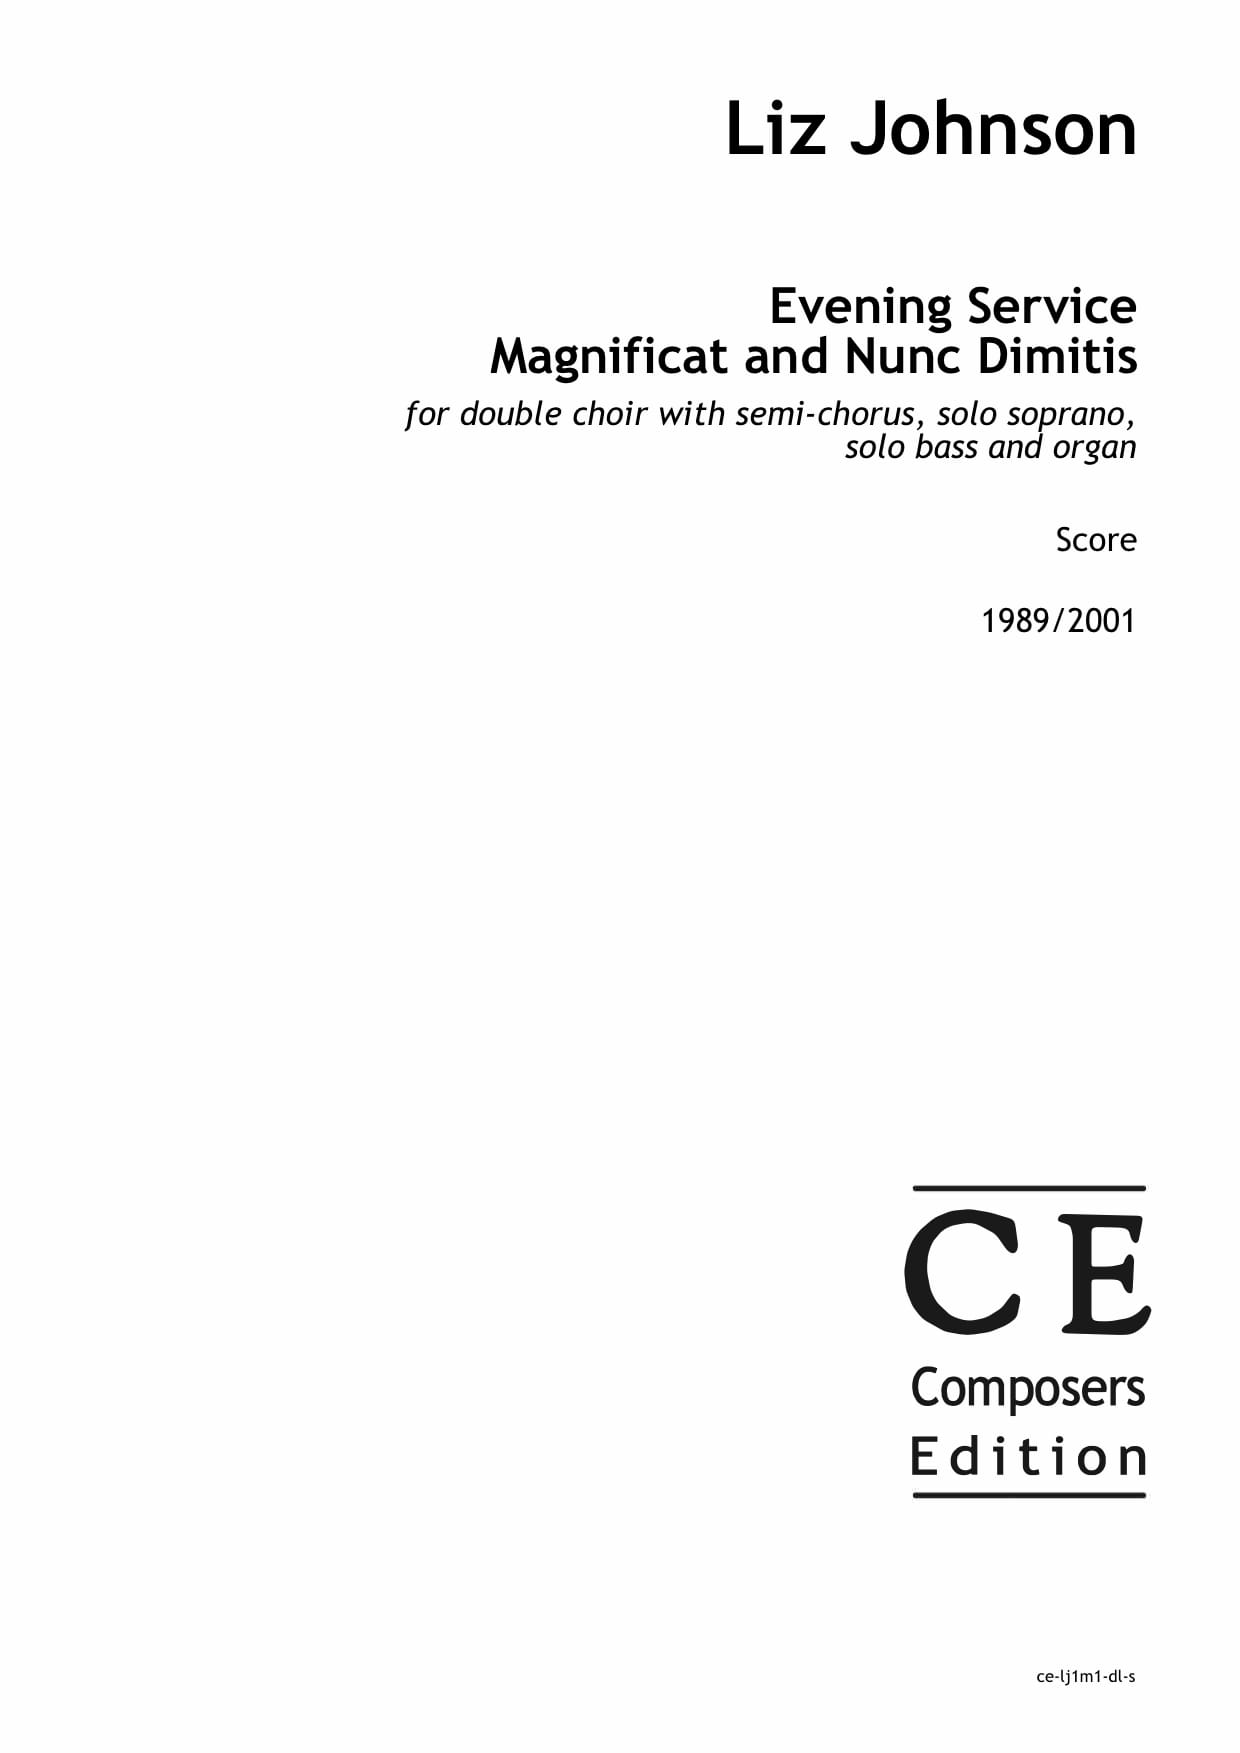 Liz Johnson: Evening Service Magnificat and Nunc Dimitis for double choir with semi-chorus, solo soprano, solo bass and organ